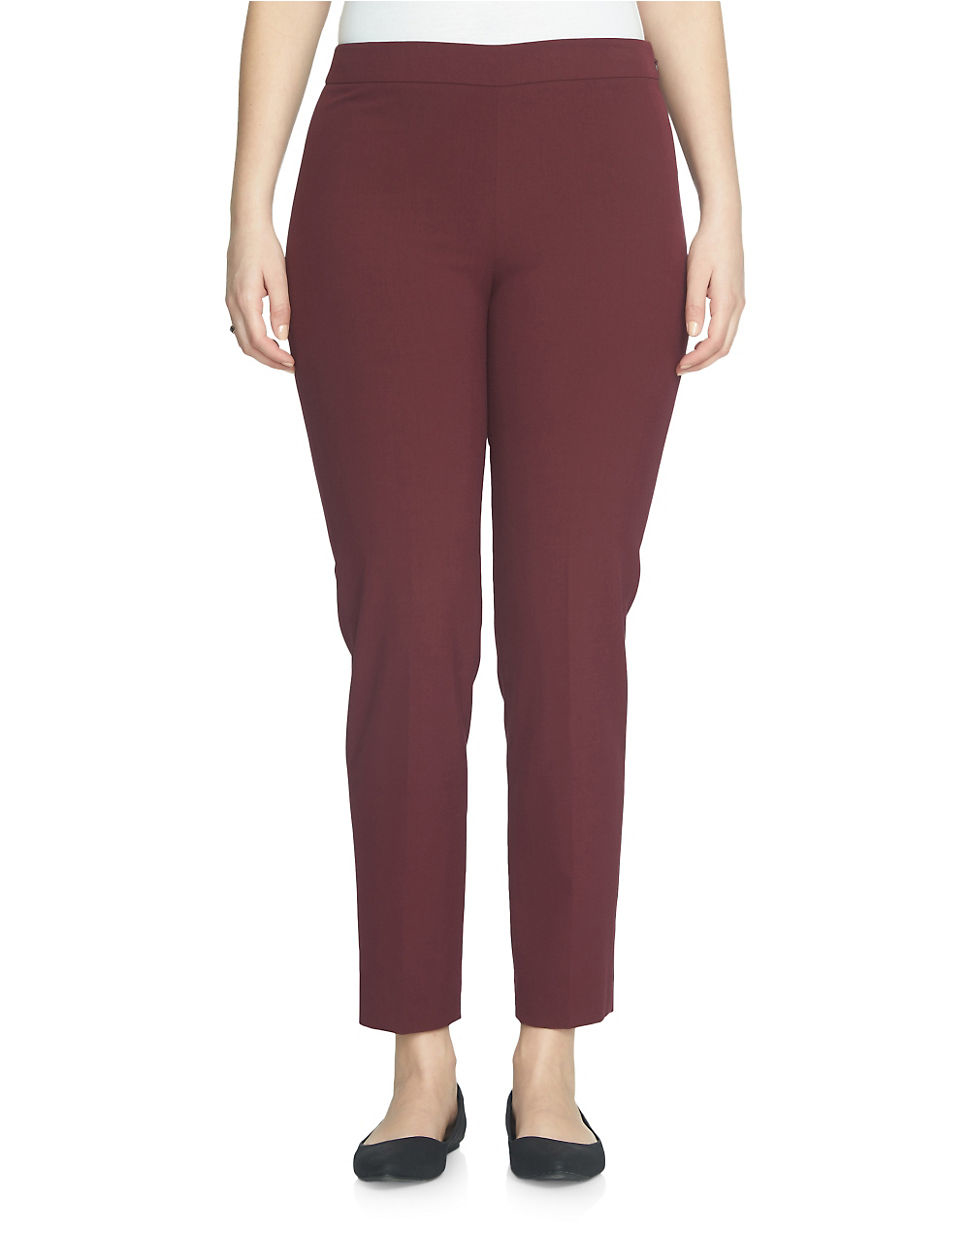 Gorgeous soft trousers with high waist and side zip fastening. Size 16 long leg with a rib sewn all down the trouser front to keep the creases in and flared bottoms like palazzo/ bootcut.